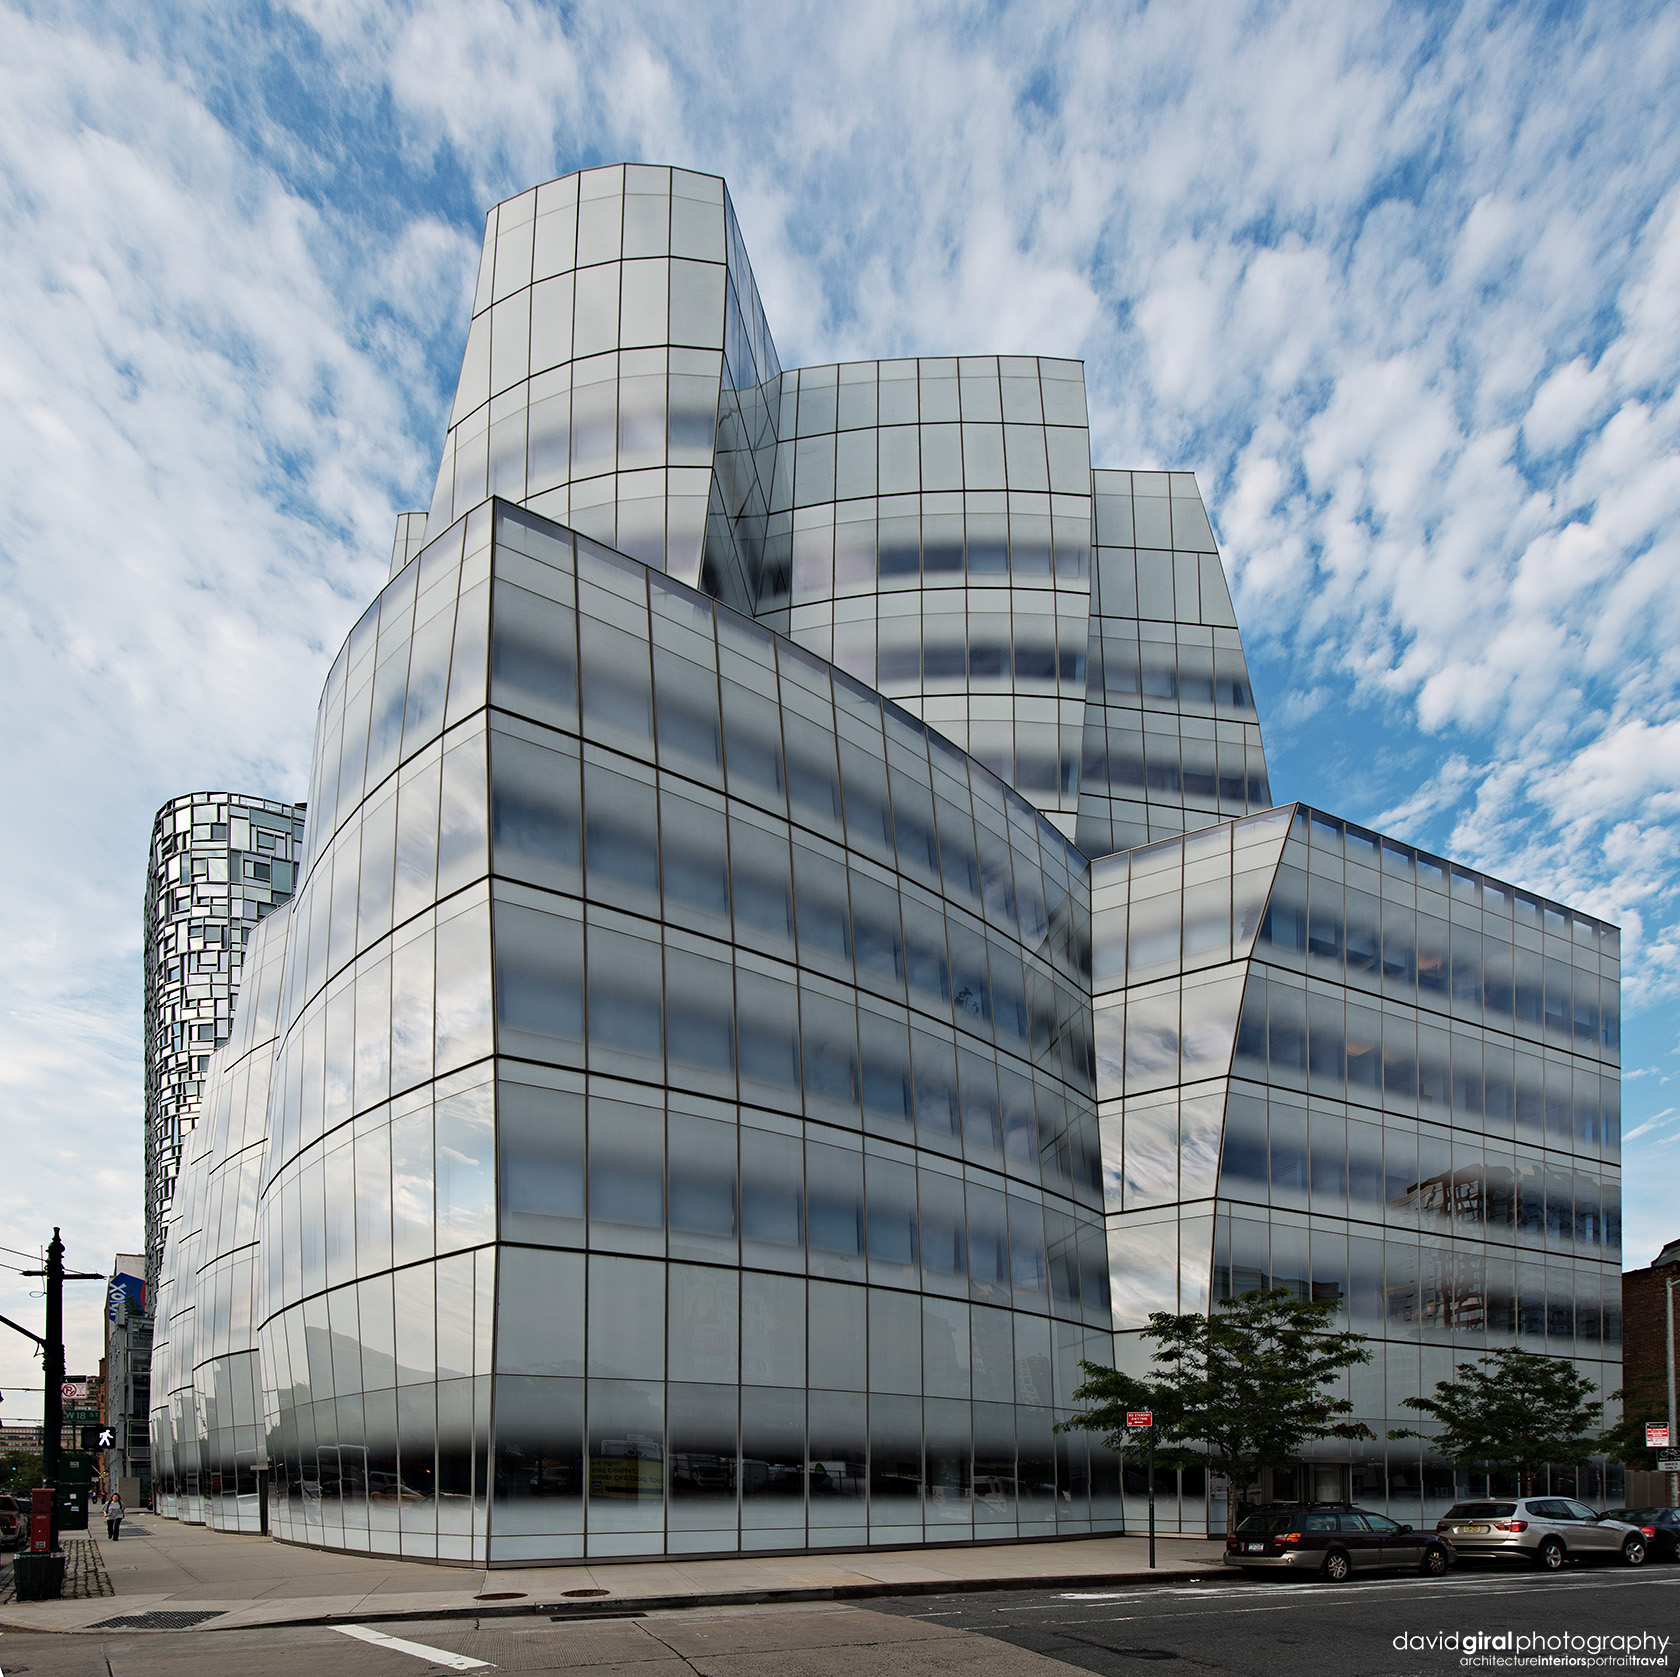 Vertical panorama of South west view of IAC Building by architect Frank Ghery Nikon D800 + Nikkor 16-35mm F/4 G VRII @ 16mm | ISO100 - 1/125s - F/8.0